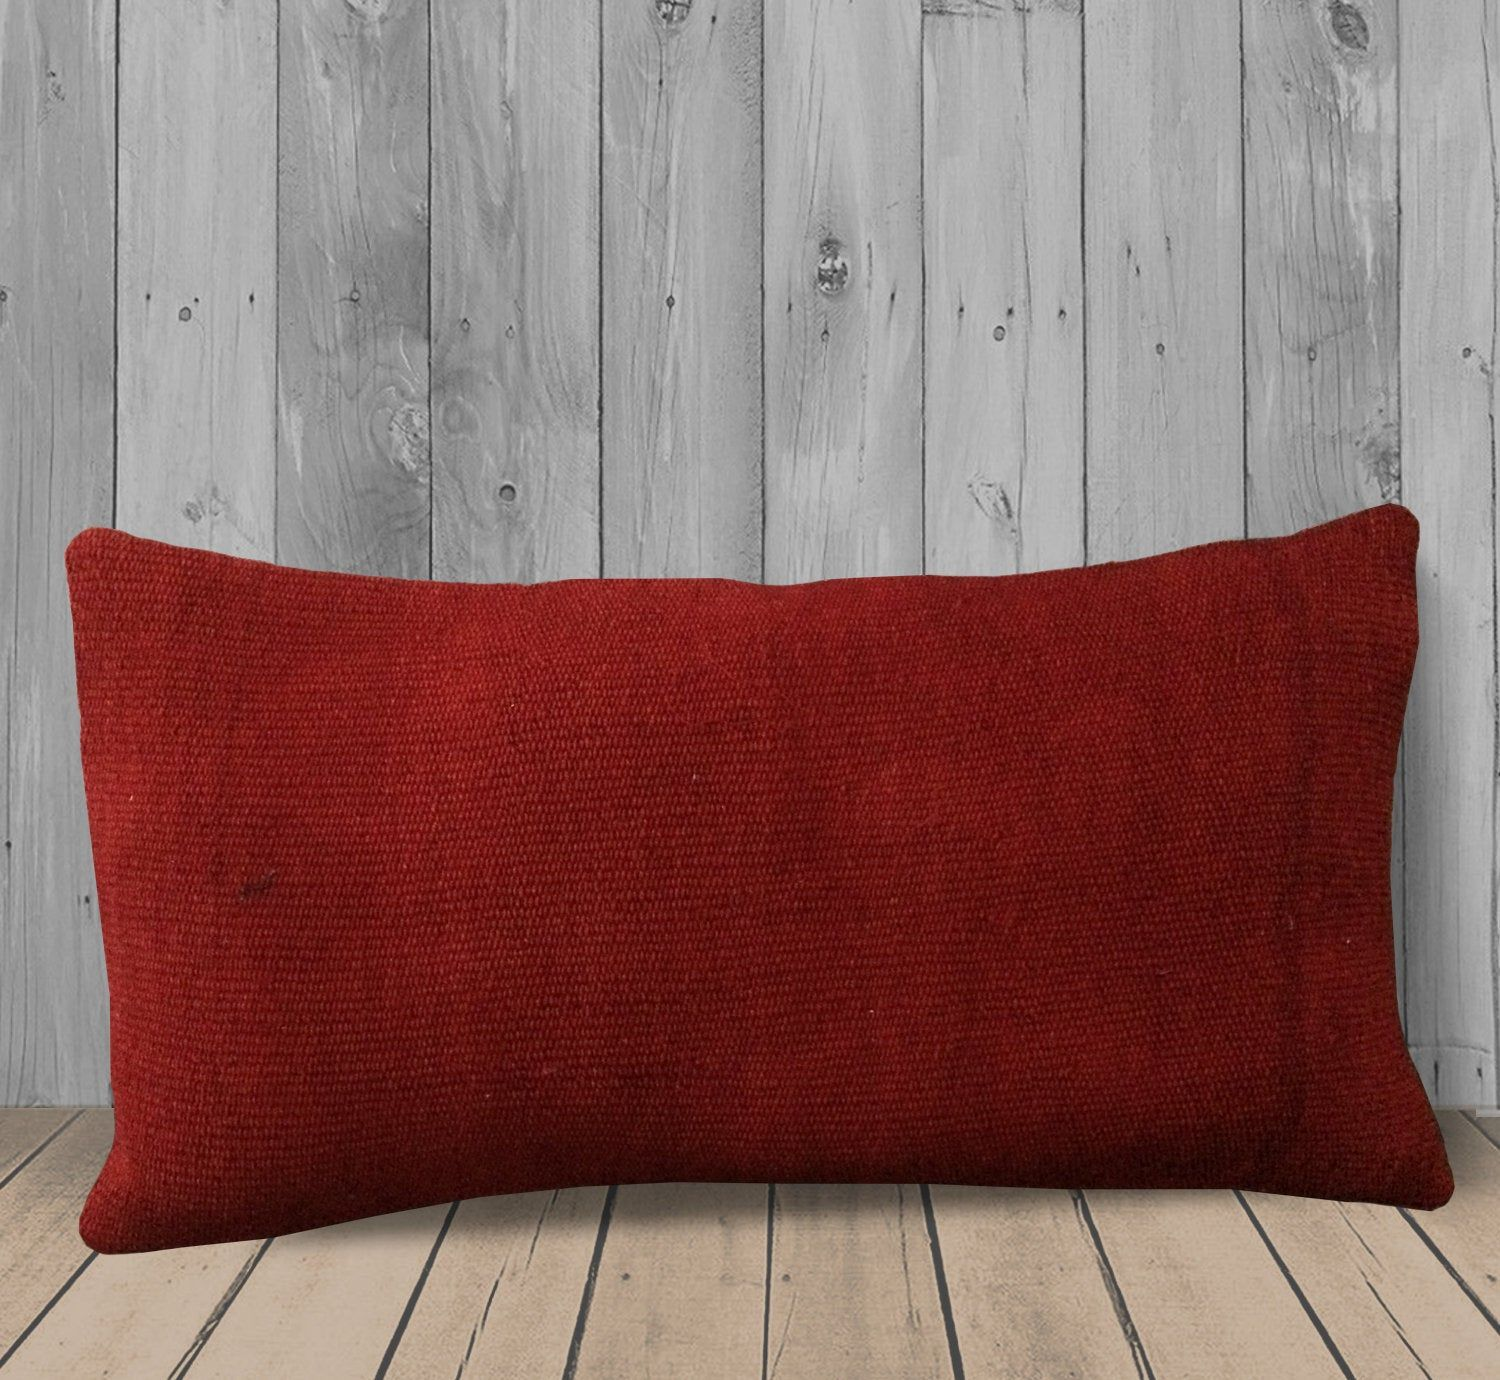 Dark Red Solid Long Lumbar Pillow Cover 12x31 Handmade Kilim